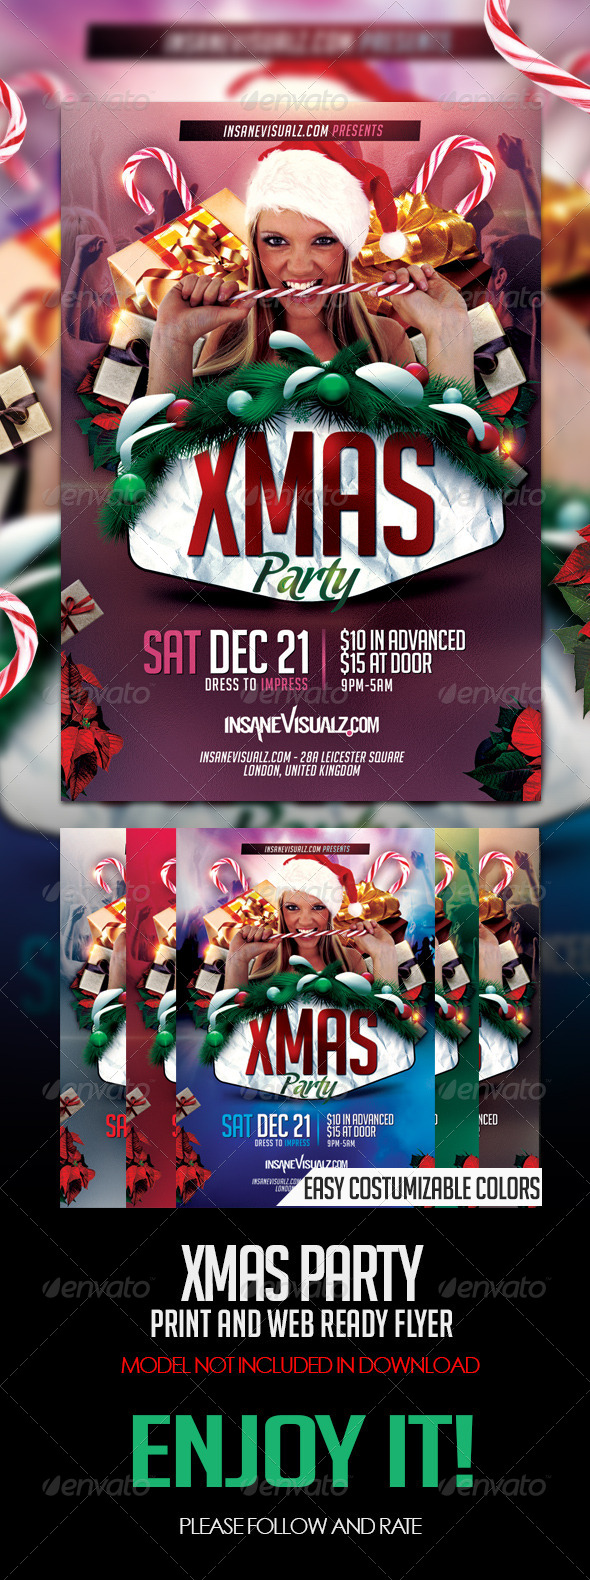 Xmas Party PSD Flyer - Flyers Print Templates